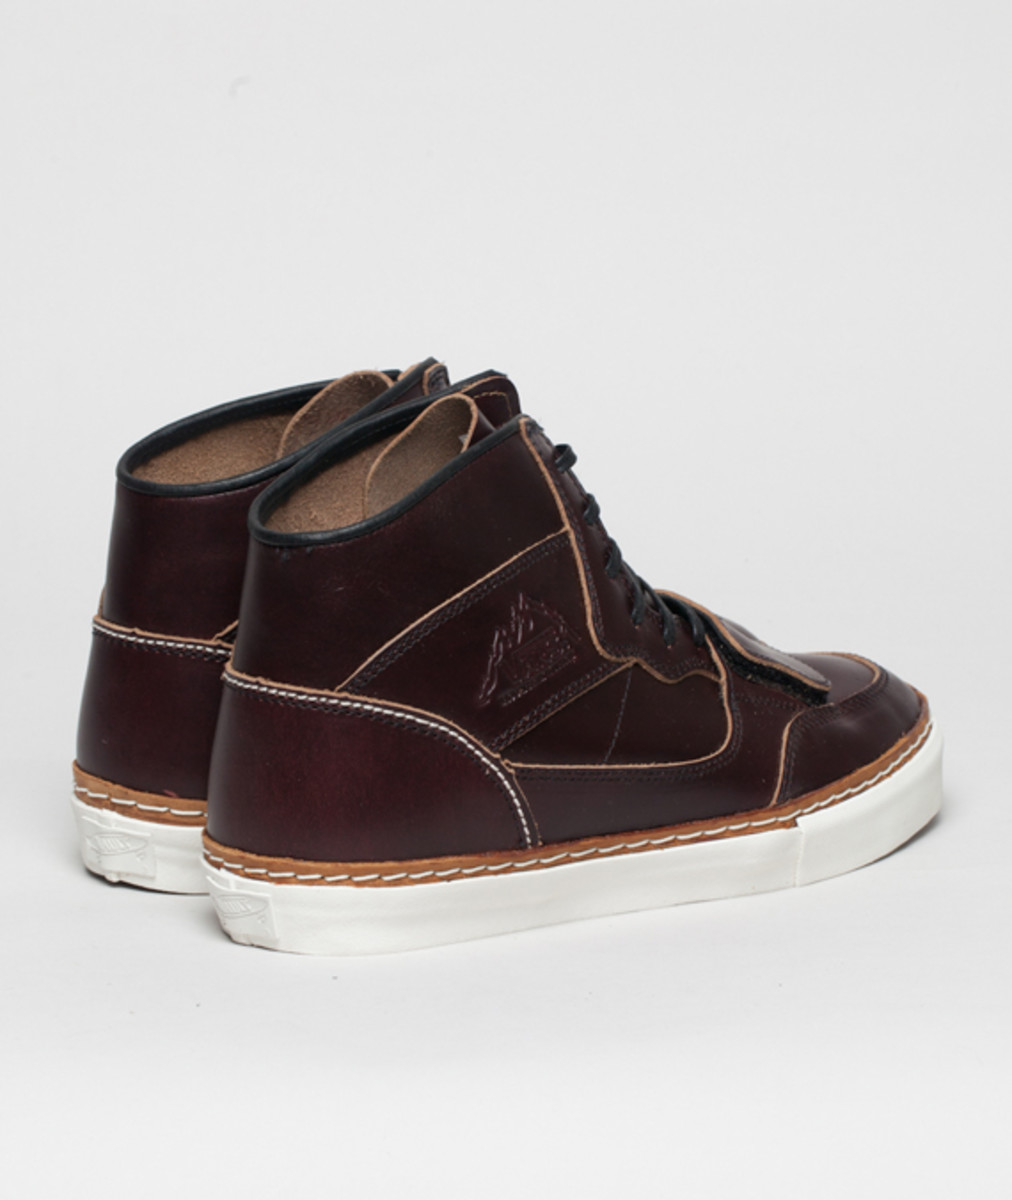 horween-leather-vans-mt-edition-decon-lx-02